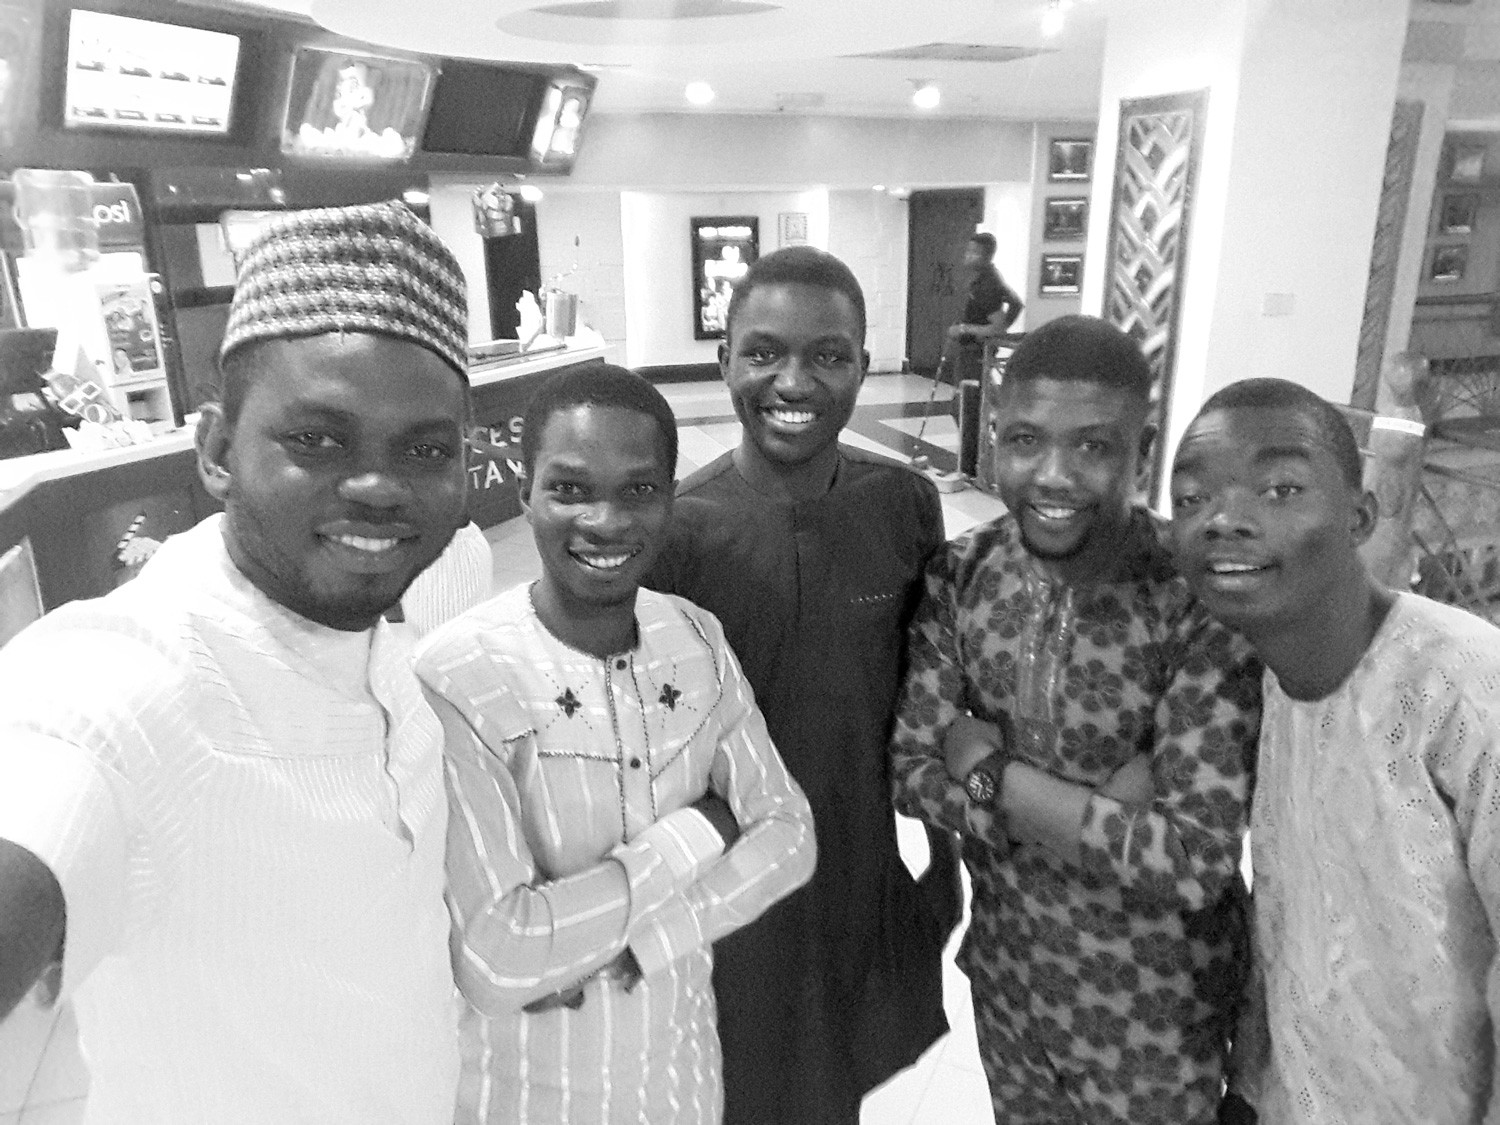 My fine-wine friends; (L-R) Myself, Joseph, Olawale, Imole & Abayomi. I think Abayomi's face is meme-worthy